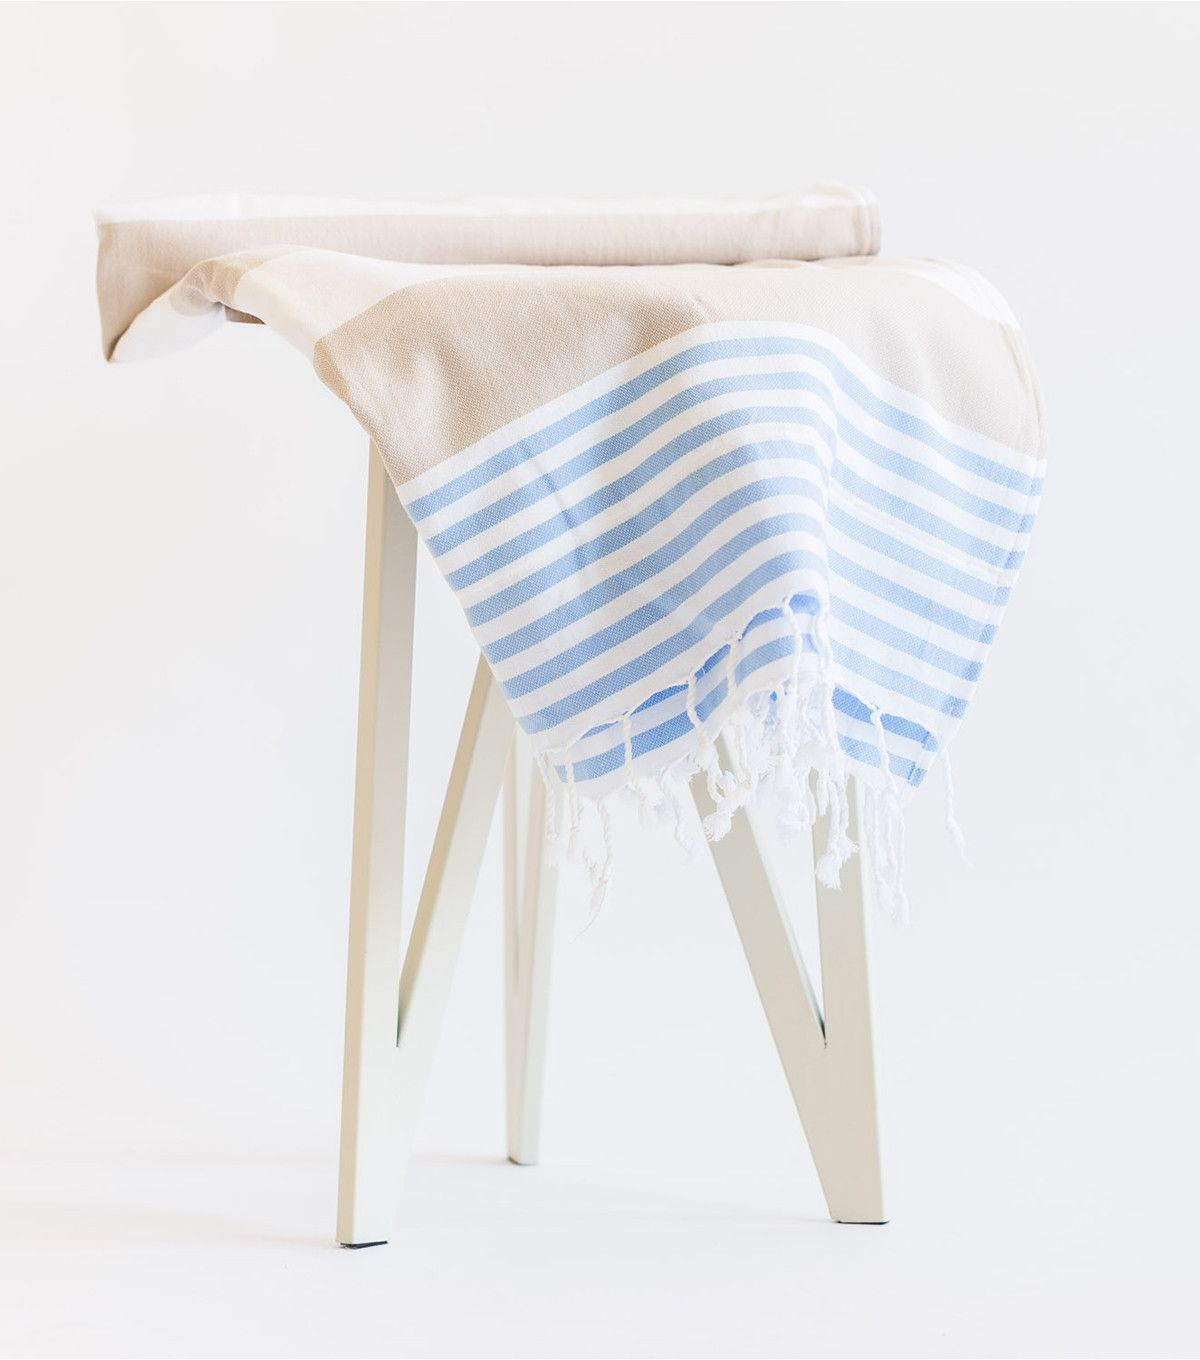 Seashore Towel Terry-Lined with Zipper Pocket